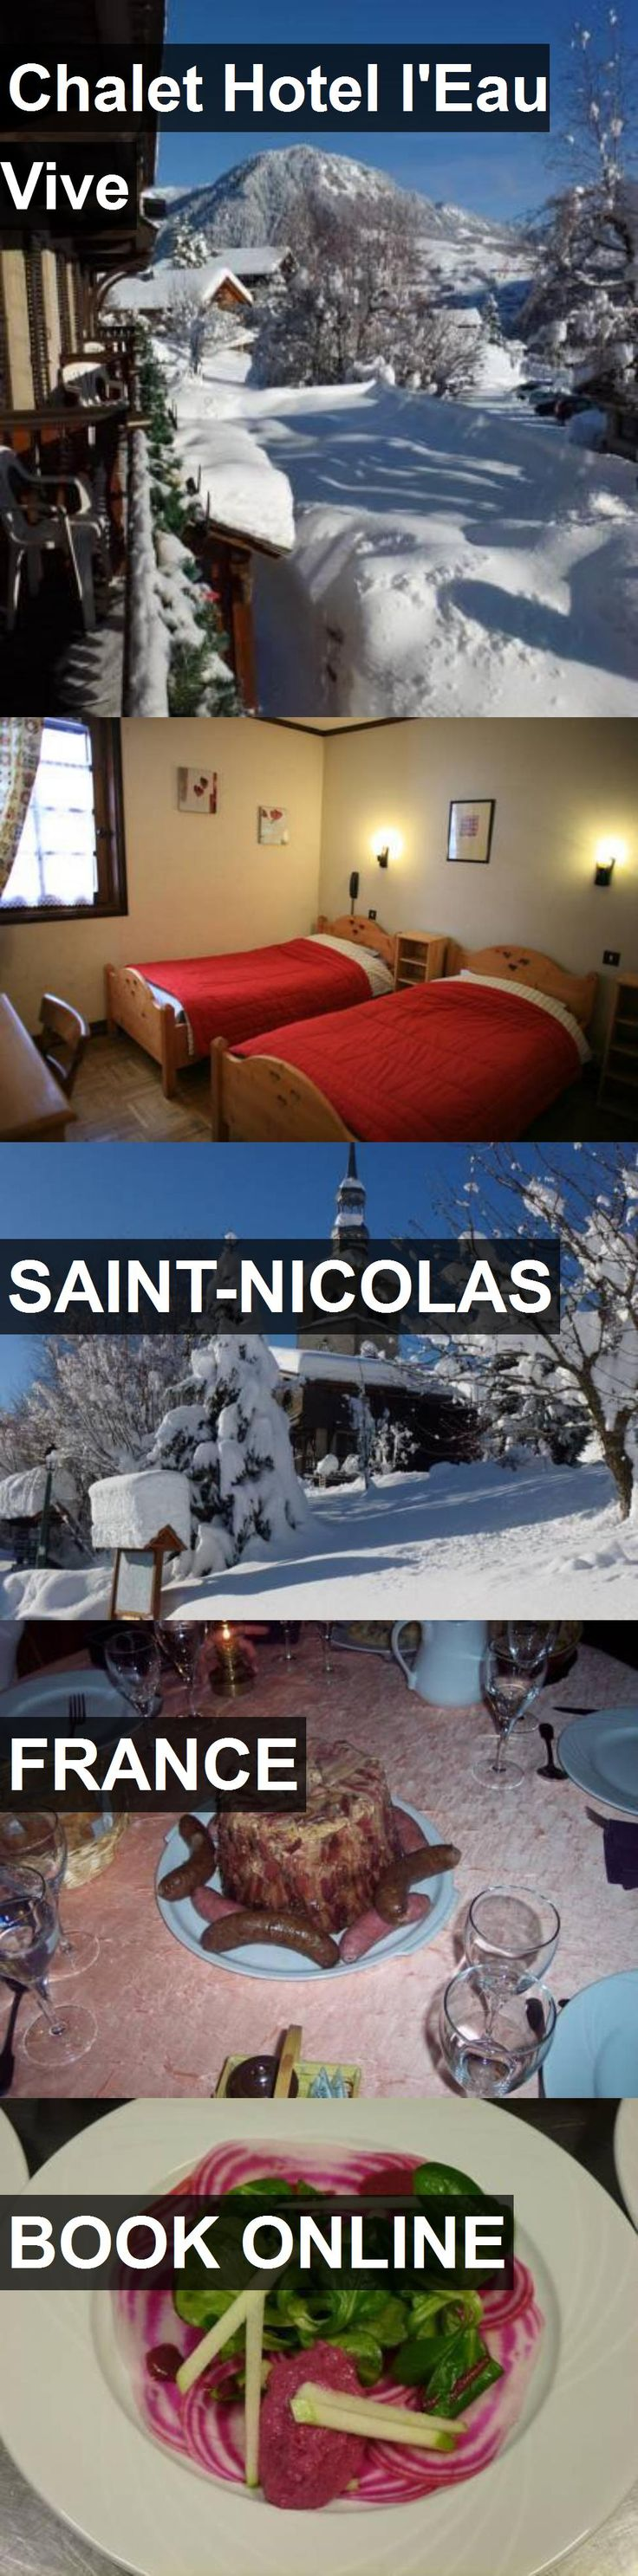 Chalet Hotel l'Eau Vive in Saint-Nicolas, France. For more information, photos, reviews and best prices please follow the link. #France #Saint-Nicolas #travel #vacation #hotel